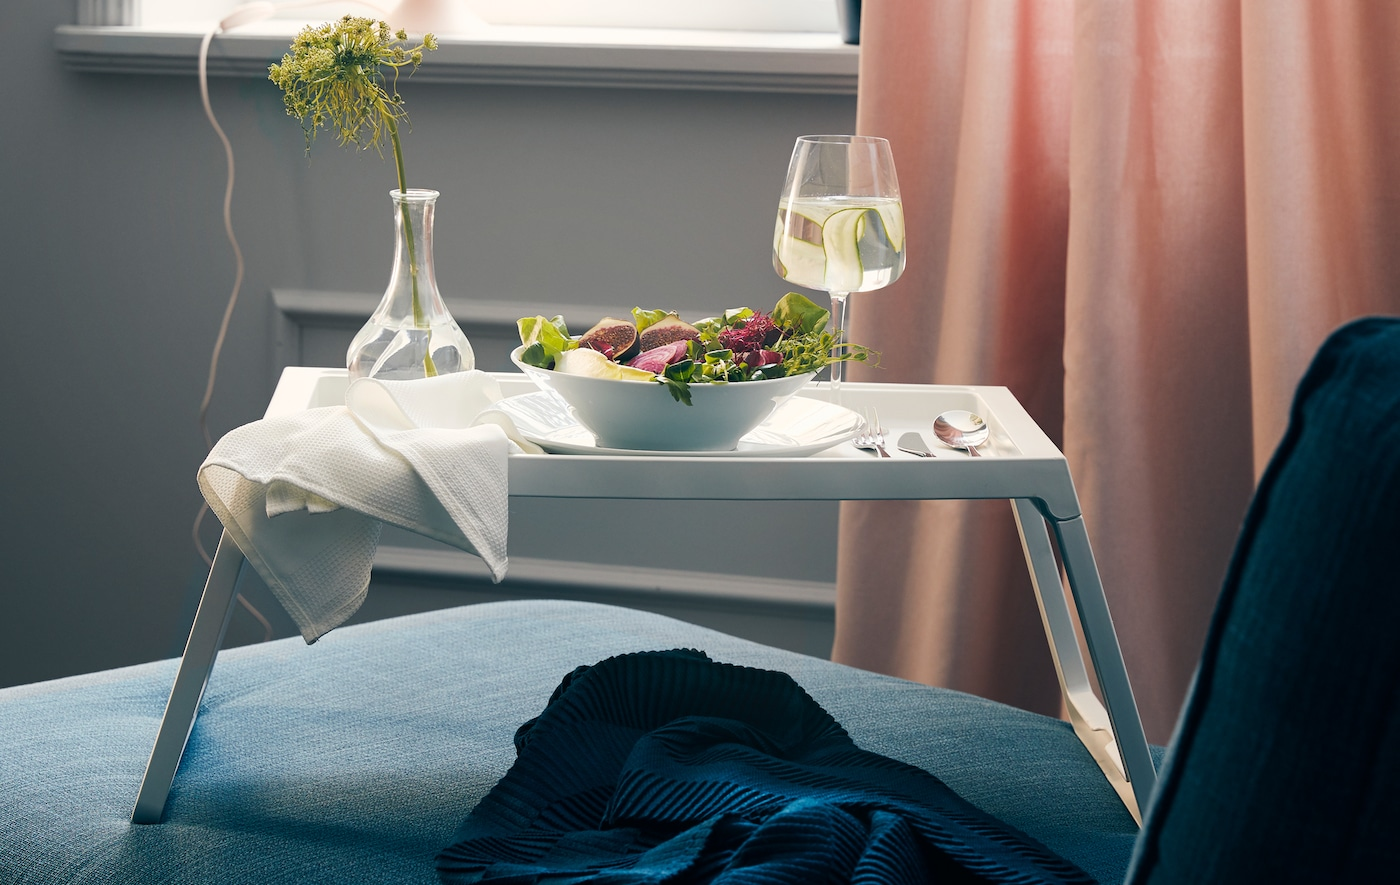 An IKEA KLIPSK bed tray resting on a sofa, with a bowl of salad, a glass, a napkin and a vase with a flower.